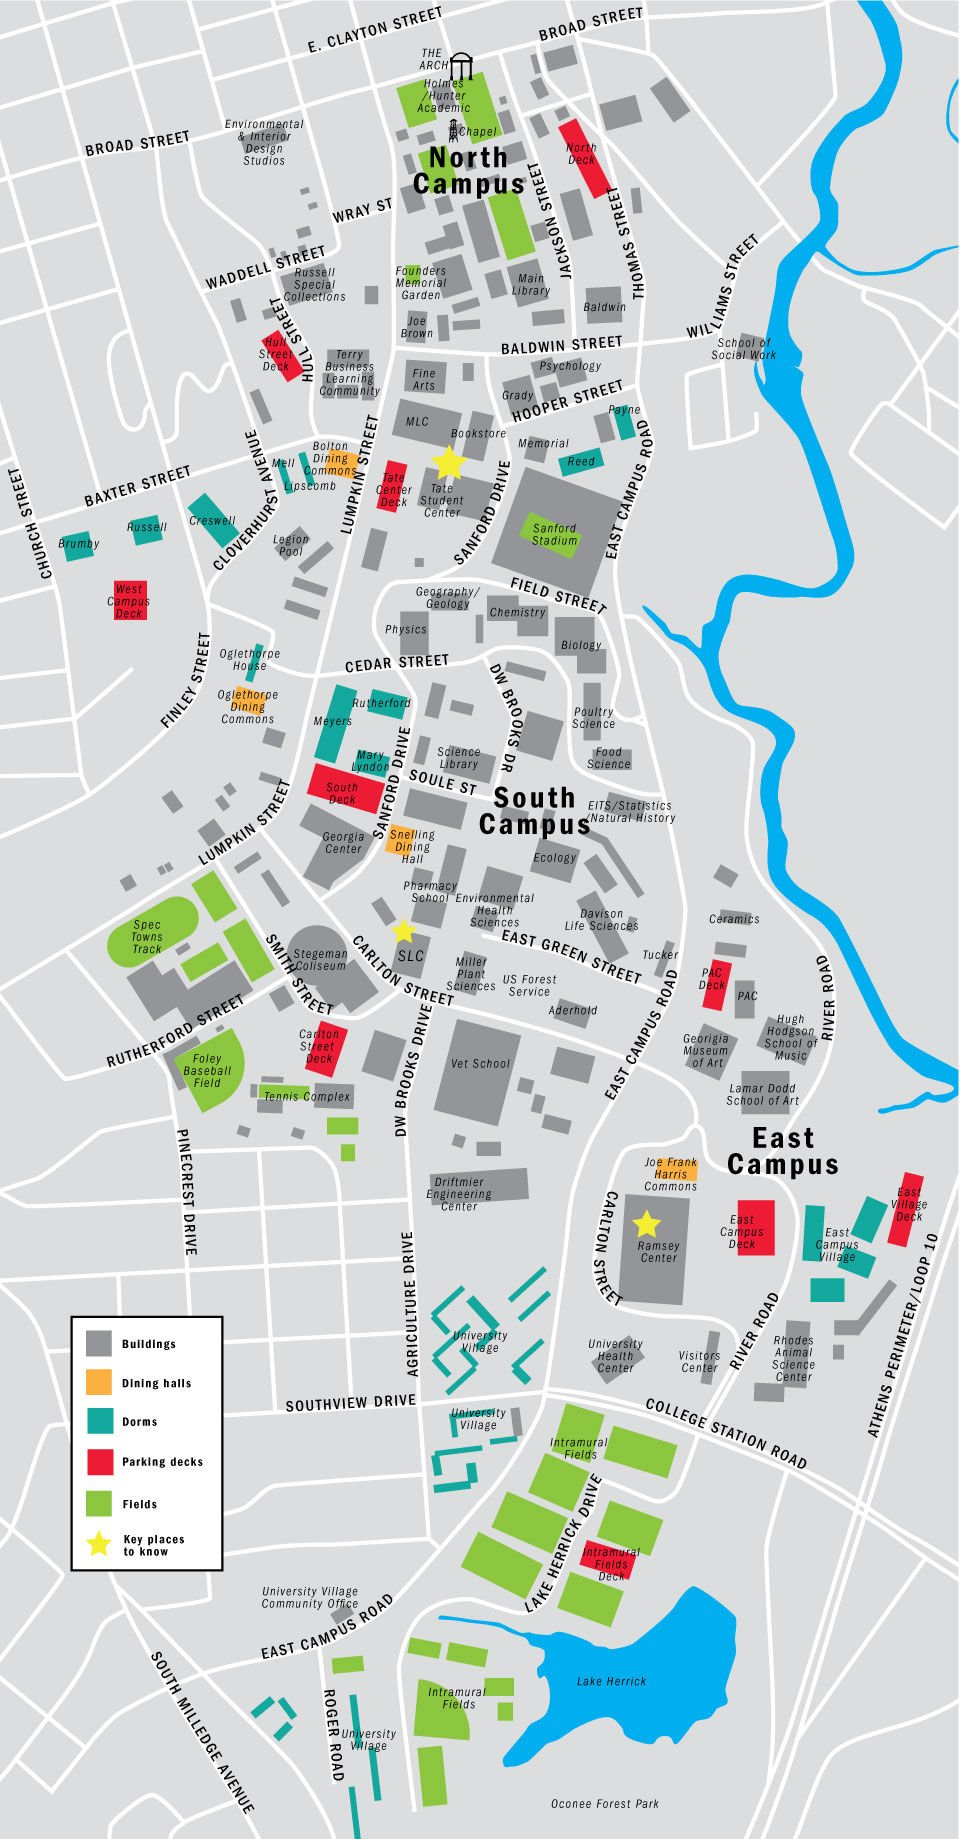 Uga Campus Map With Building Numbers.Oh The Places You Ll Go An Extensive Look At The Hot Spots On The